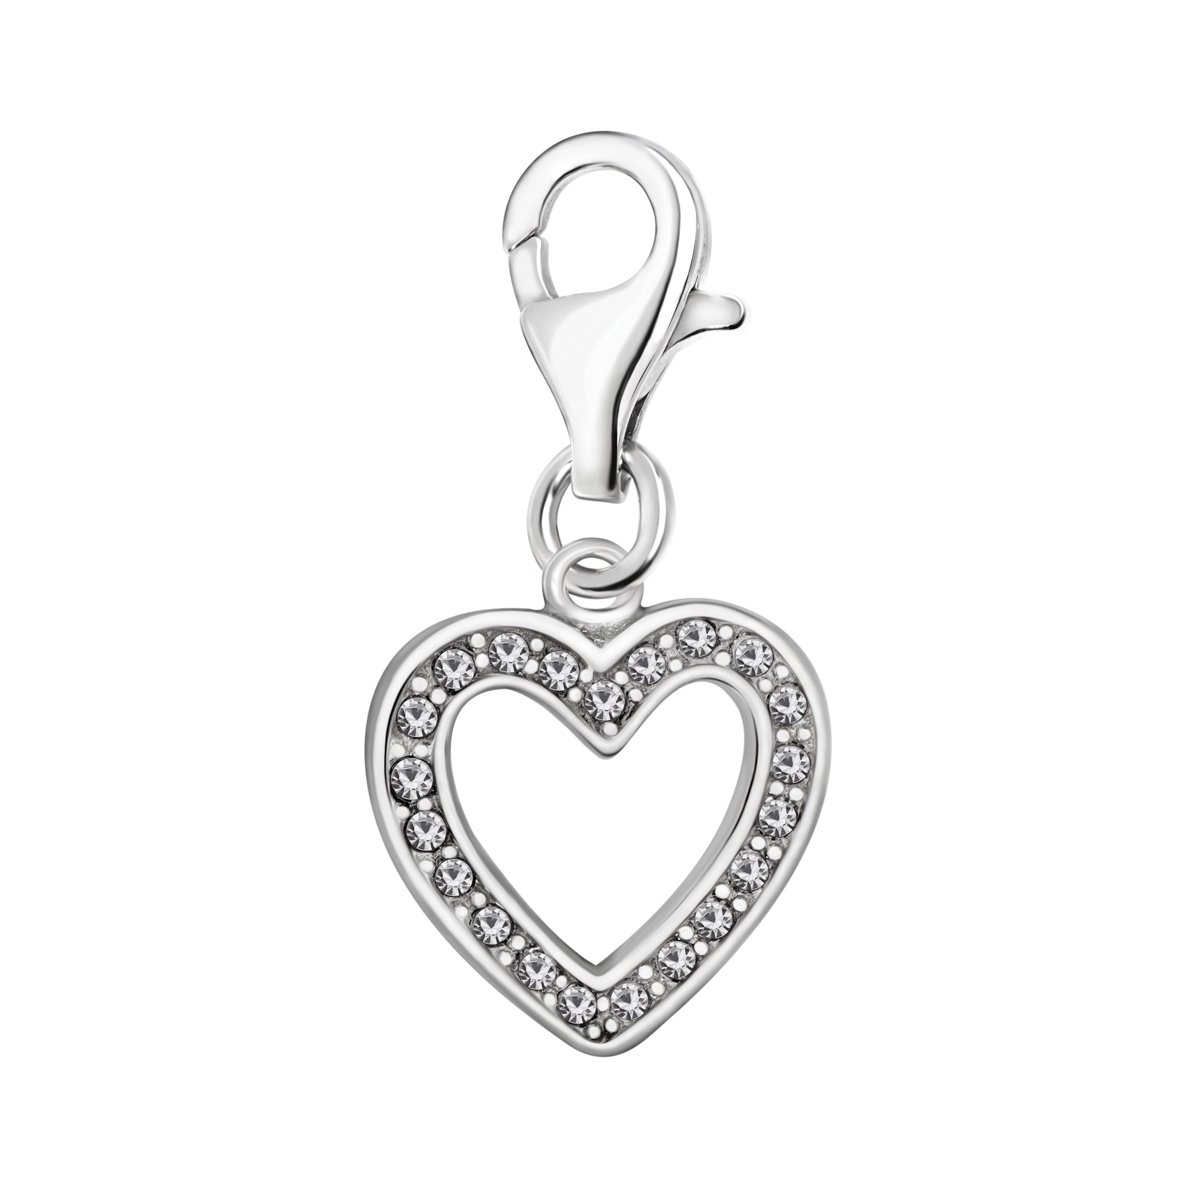 Quiges 925 Sterling Silver White Cubic Zirconia Open Heart Lobster Clasp Charm Clip on Pendant